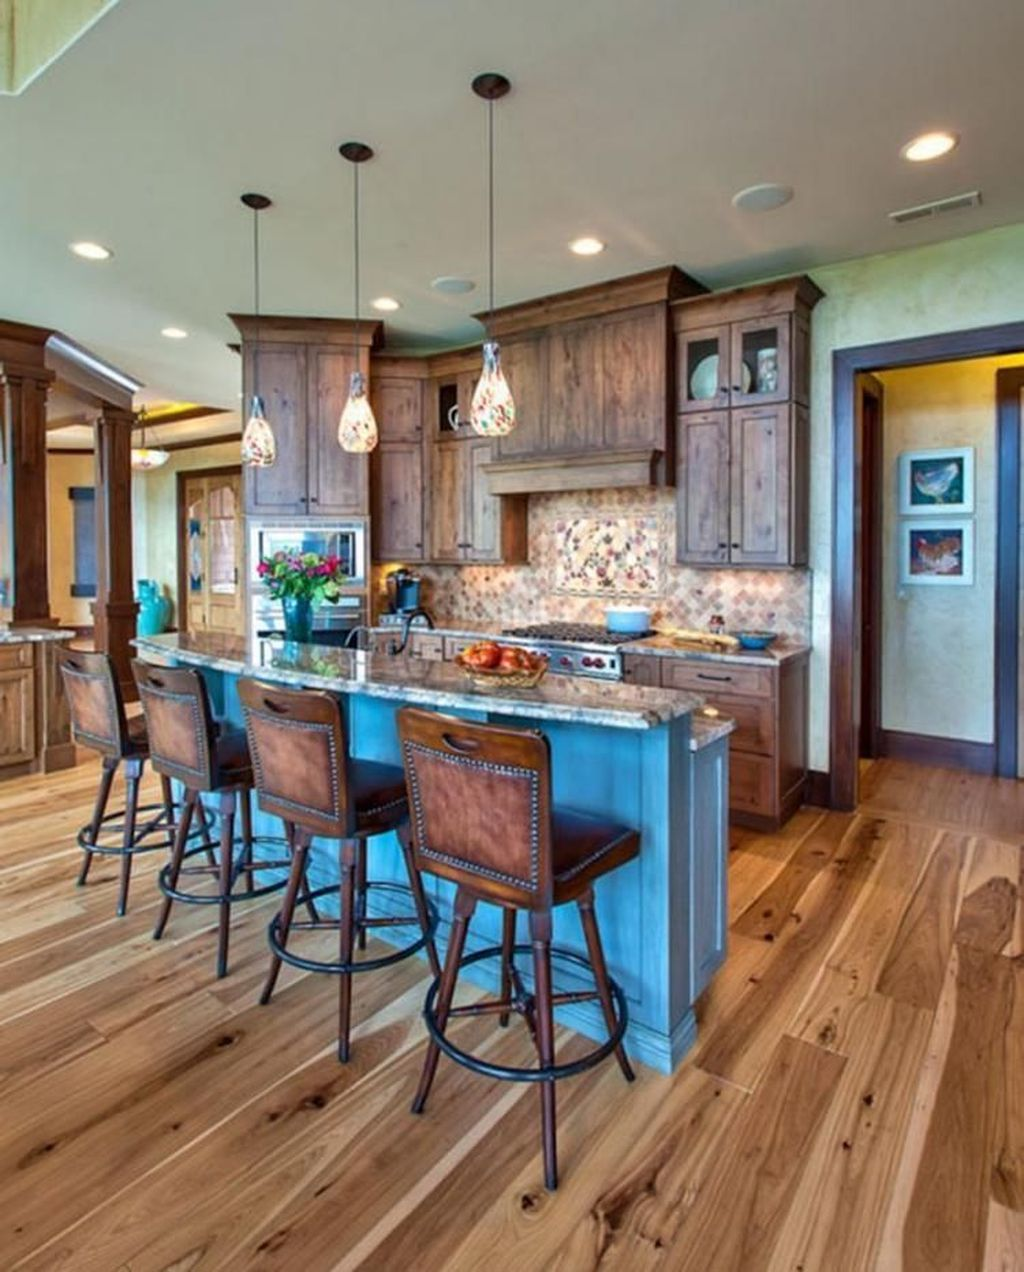 42 lovely rustic western style kitchen decorations ideas western kitchen decor country house on kitchen decor themes rustic id=59339